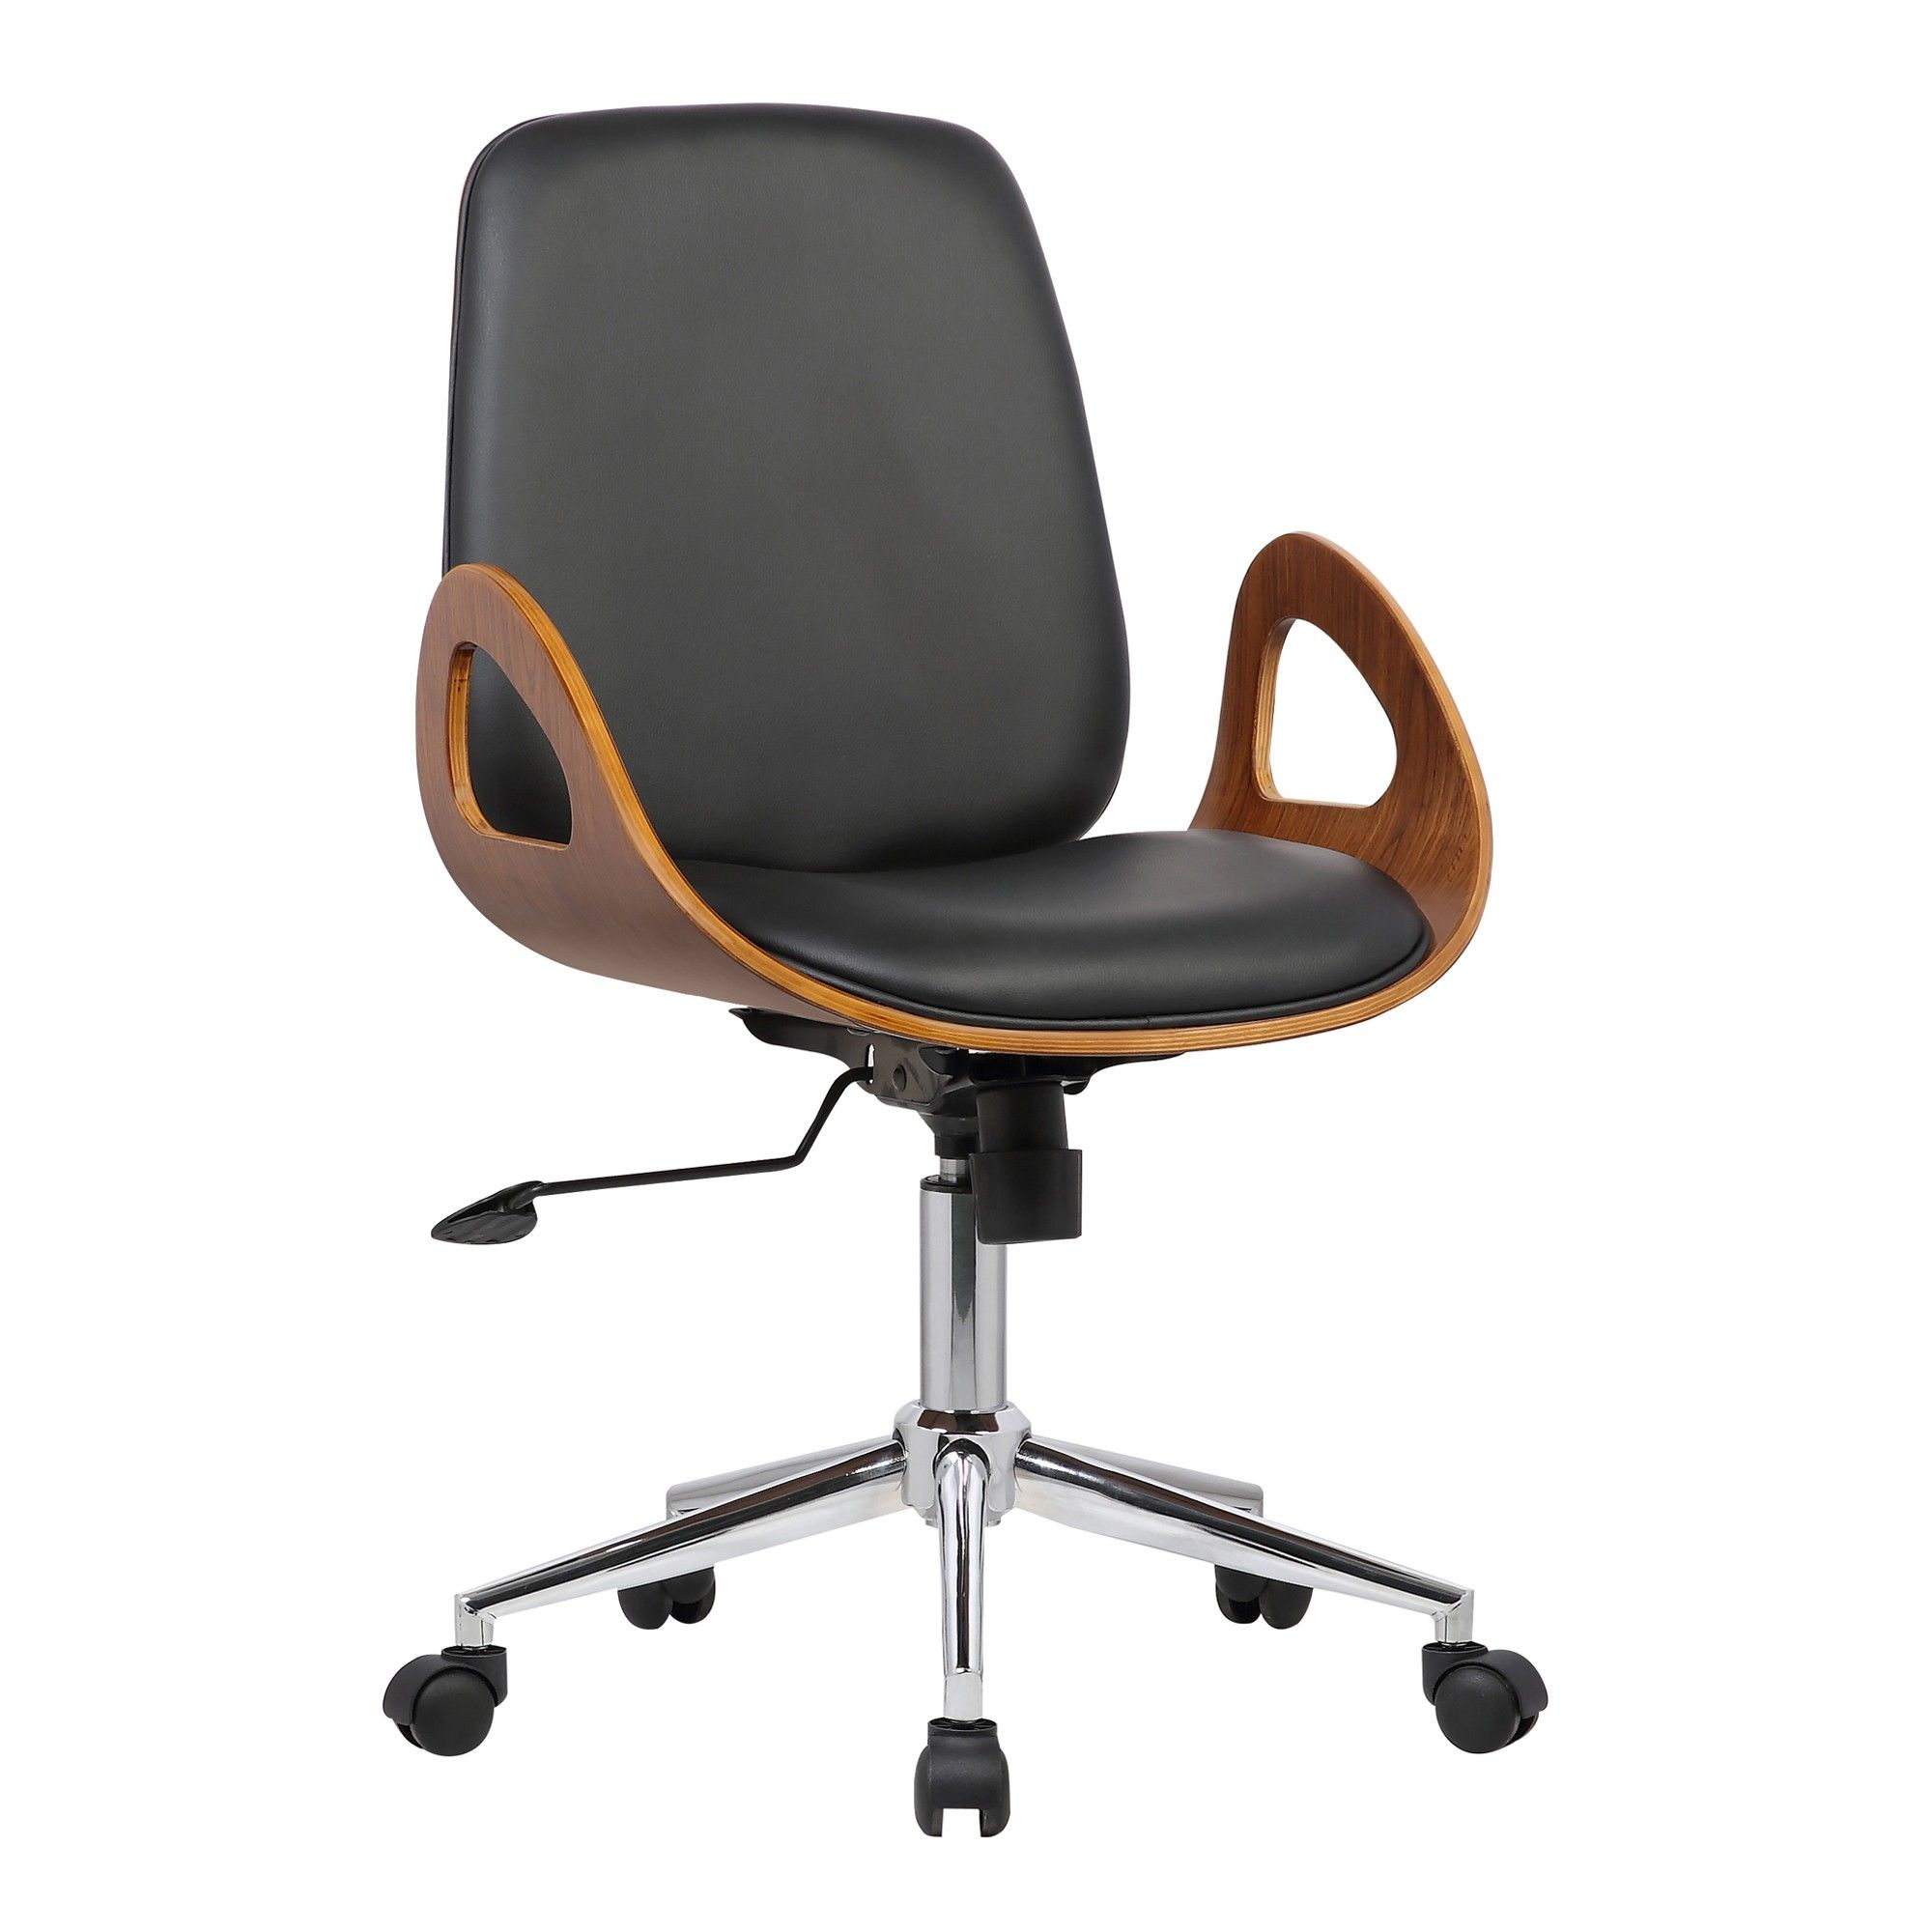 7a6b4c9150 Wallace Mid-Century Office Chair in Chrome finish with Black Faux Leather  and Walnut (Brown) Veneer Back - Armen Living